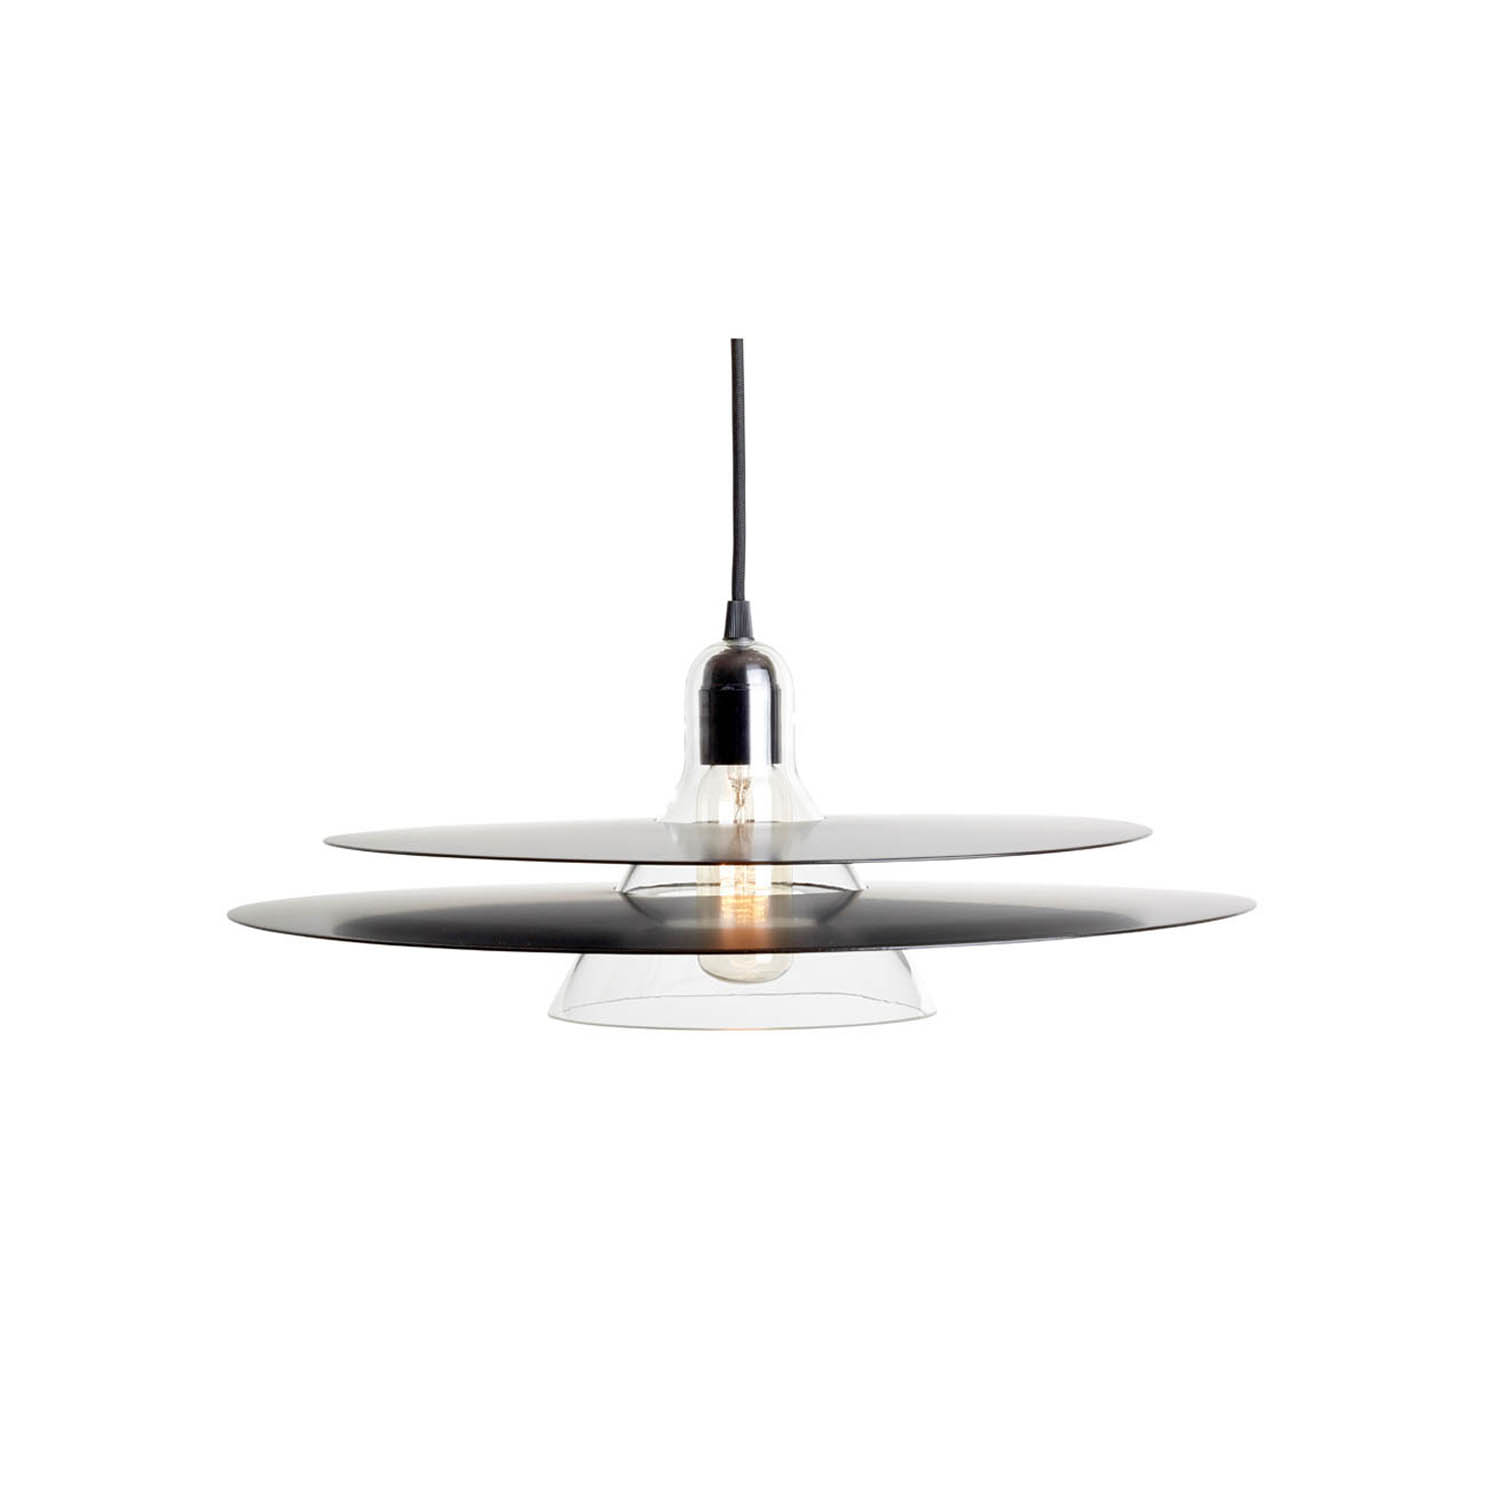 Cymbal Pendant Lamp - Cymbal is a pendant lampmade of blown glass and two slighlyconvexe trays. The chrome versionlooks transparent as it reflects itsenvironment, whereas the black oneoffers a more graphic style.Cymbal can be displayed both aloneor in combination with other Cymballamps to multiply reflections andconfuse perception.  | Matter of Stuff